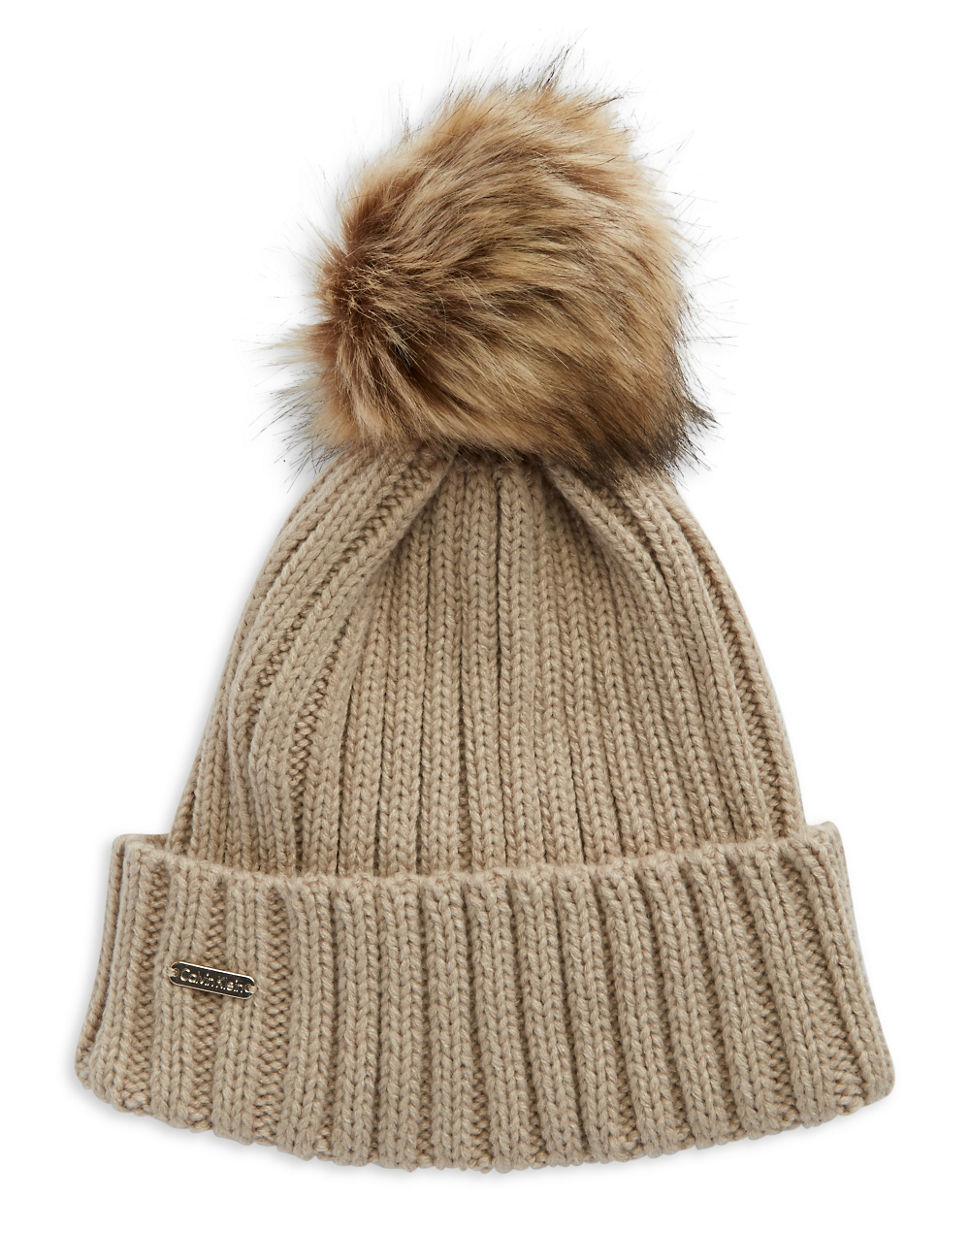 71794ba5a57 Calvin Klein Ribbed Knit Faux-fur Pompom Beanie in Natural - Lyst